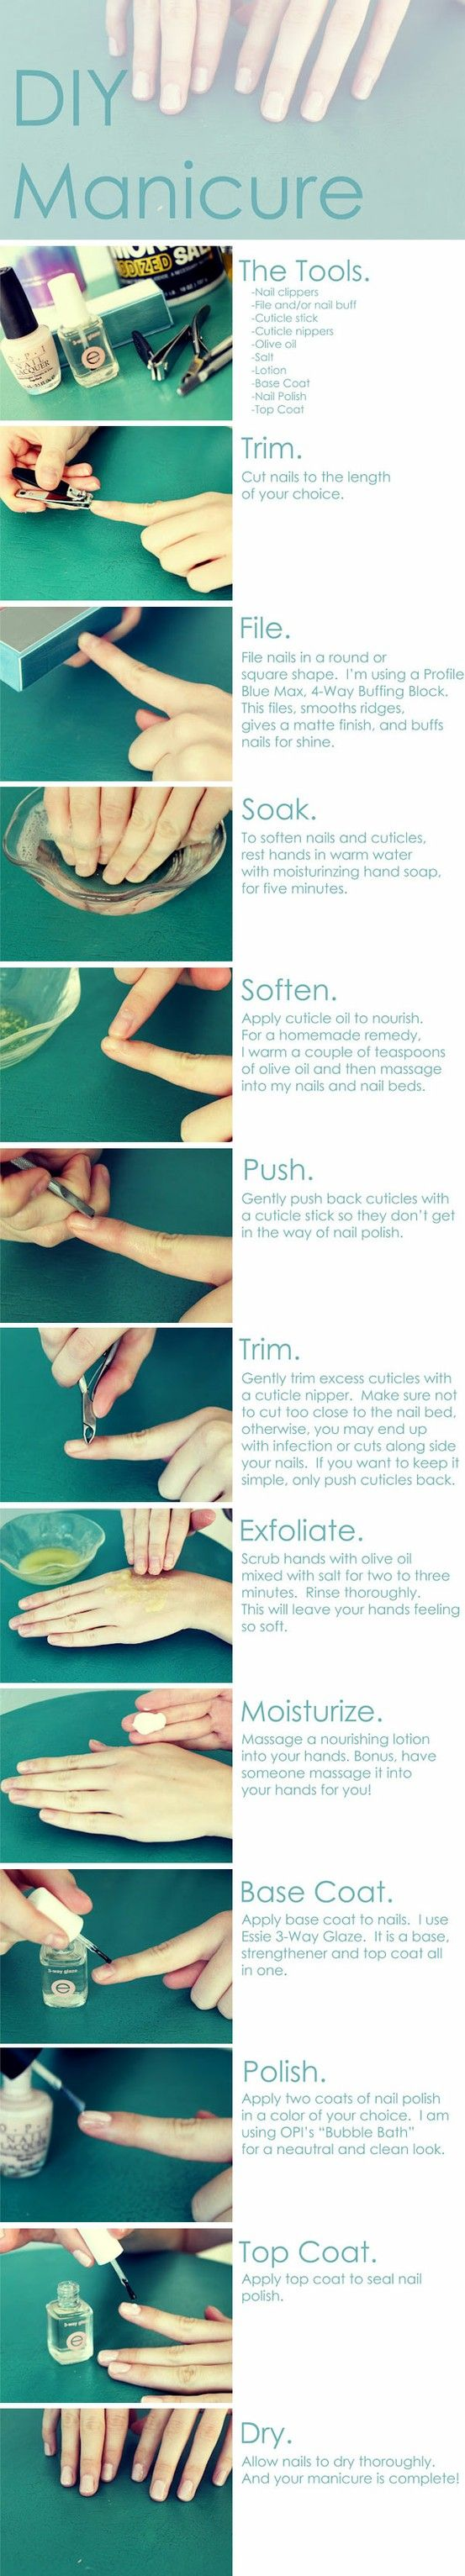 Step-by-step Manicure